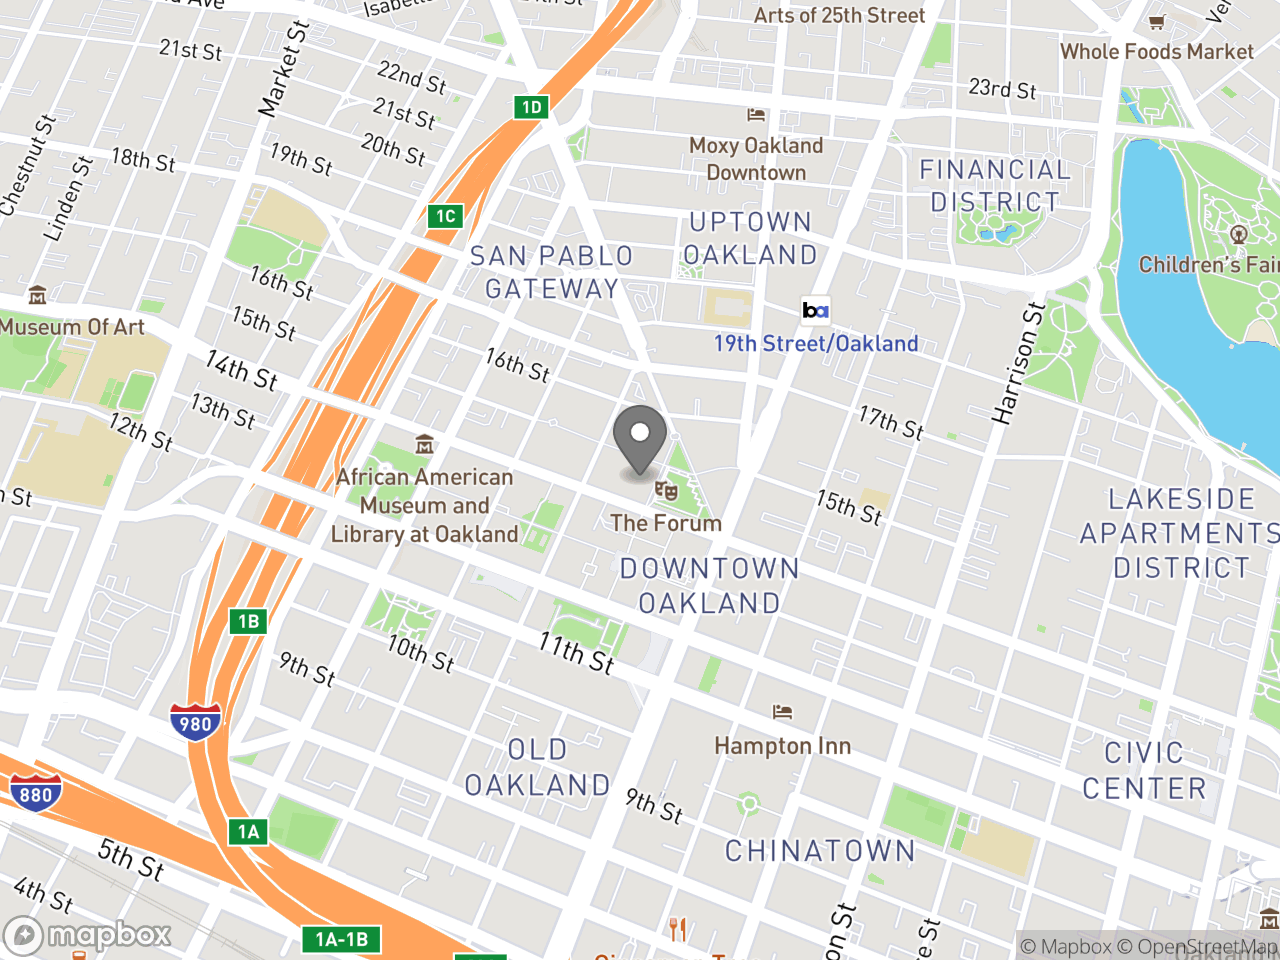 Map location for Oakland Workforce Development Board (OWDB) - Regular Meeting February 6, 2020, located at 1 Frank H. Ogawa Plaza in Oakland , CA 94612